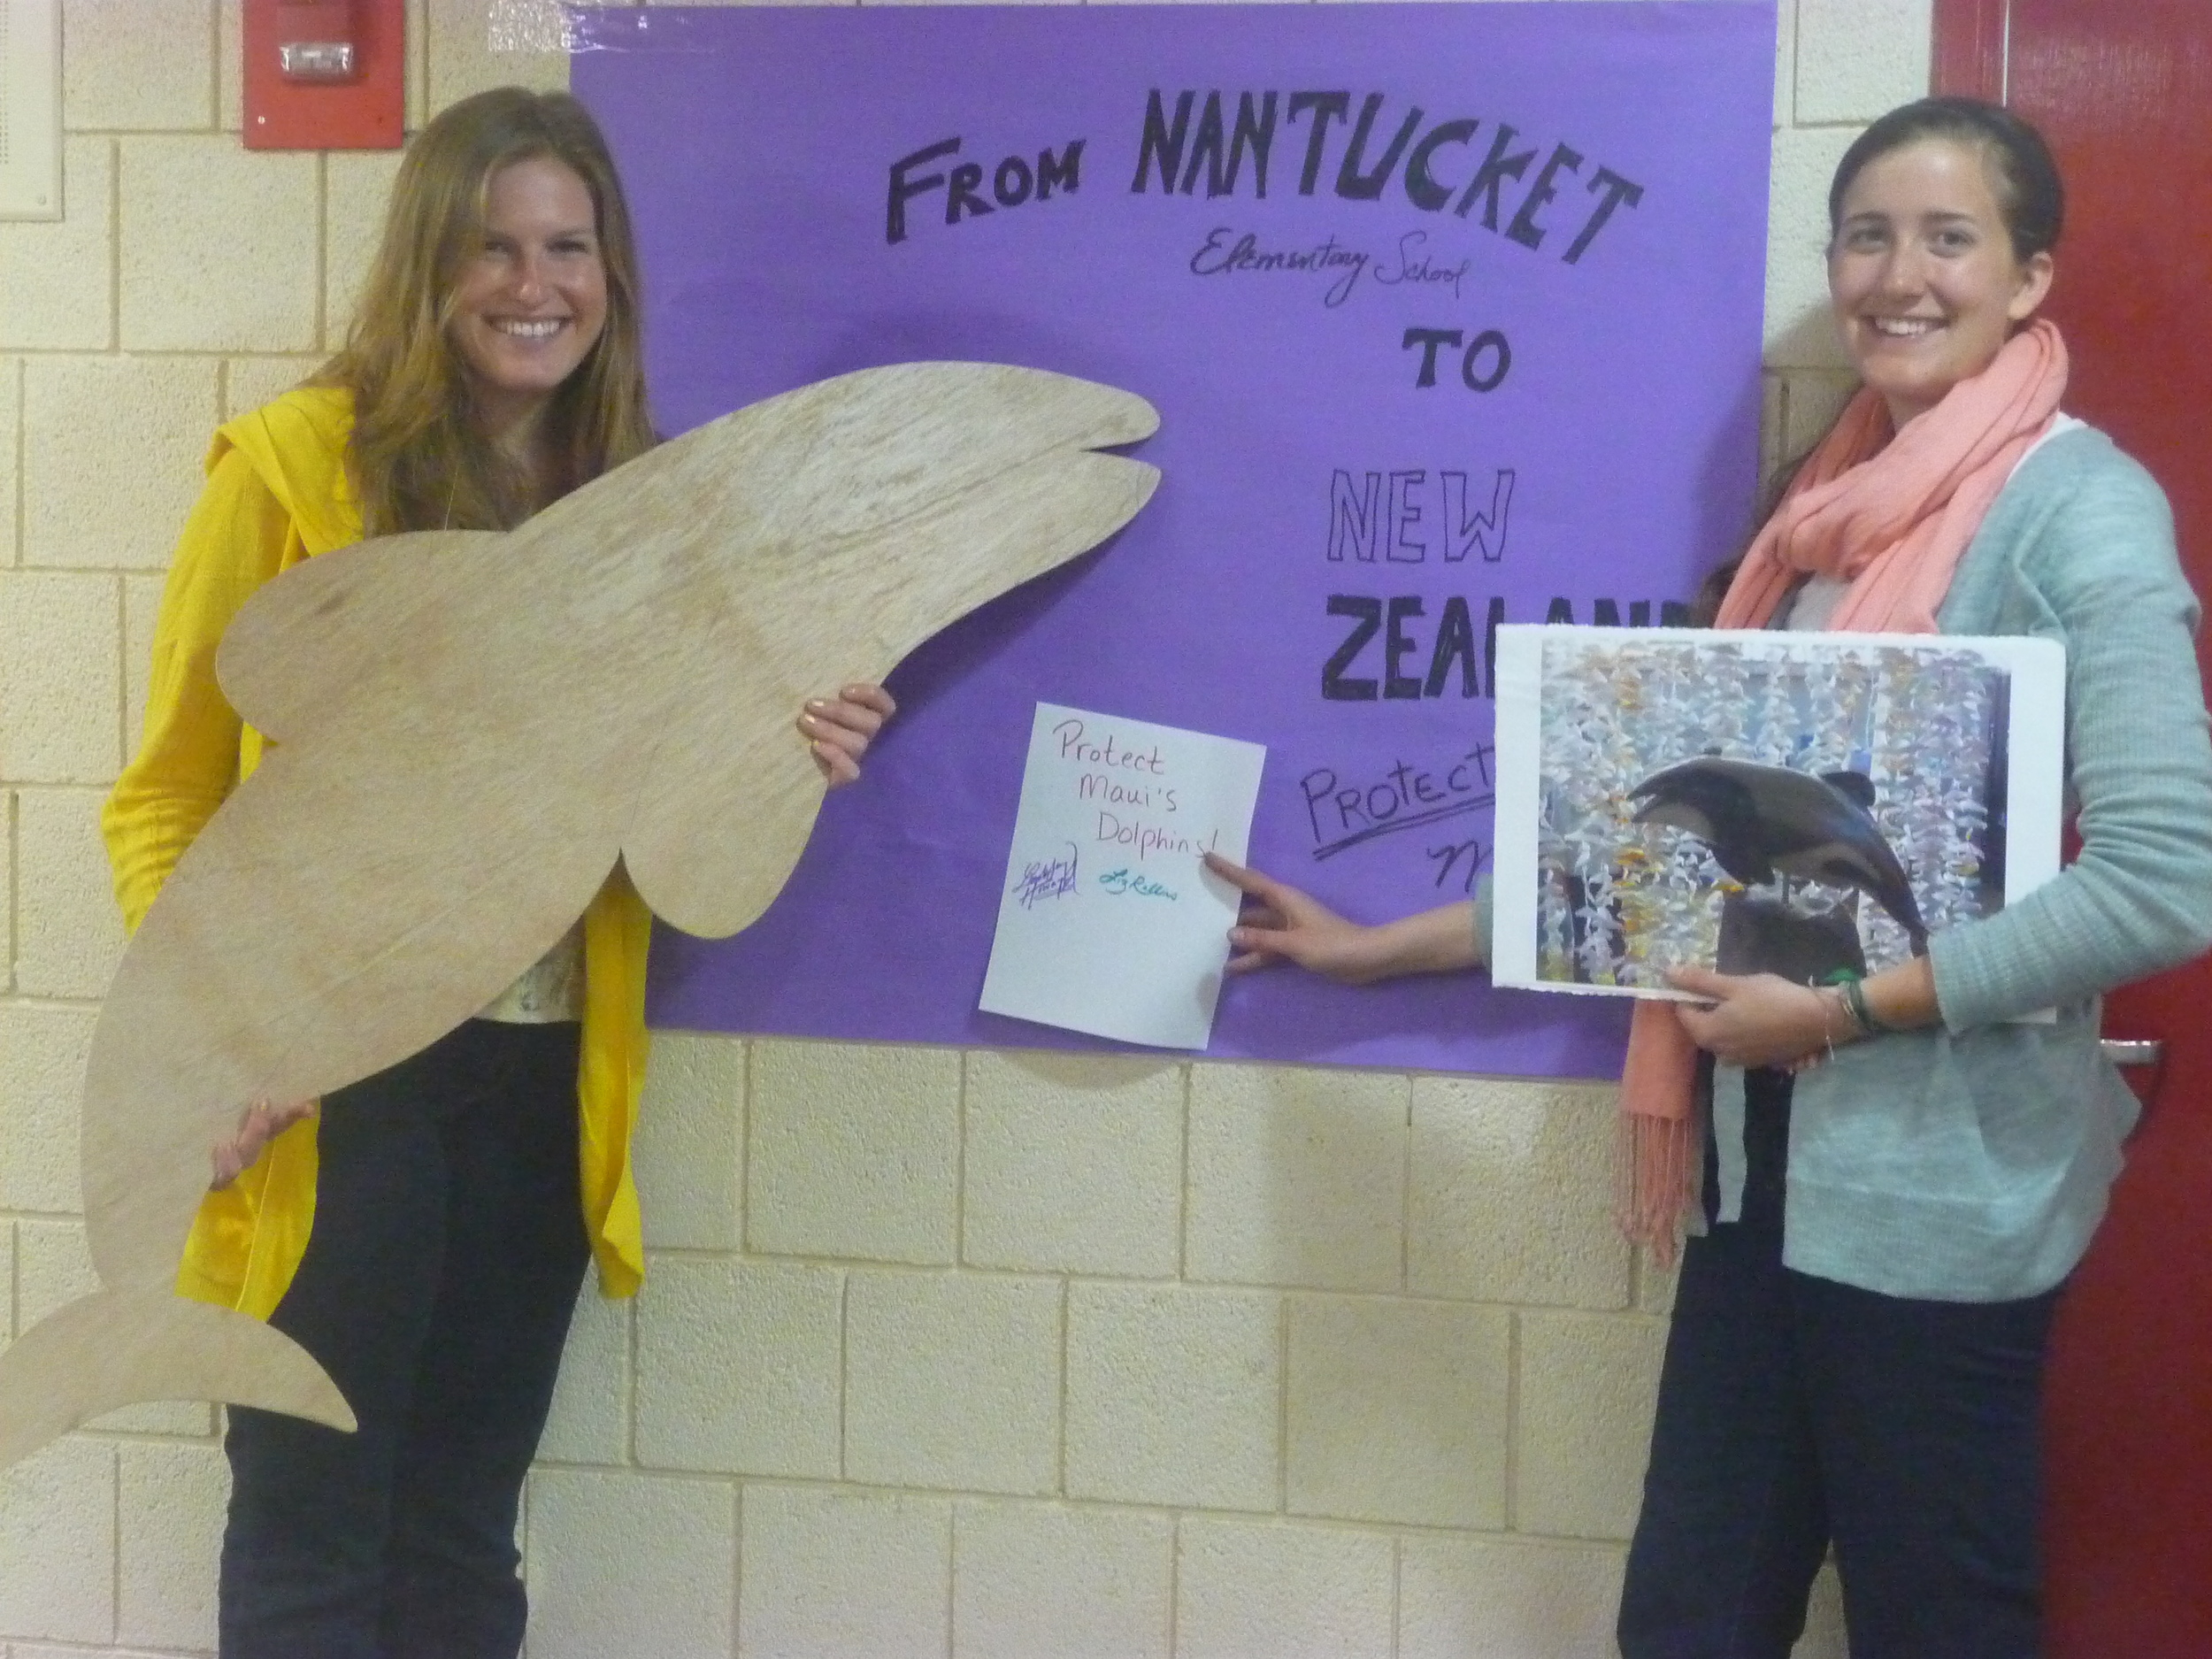 From Nantucket to New Zealand  (Nantucket Elementary School)